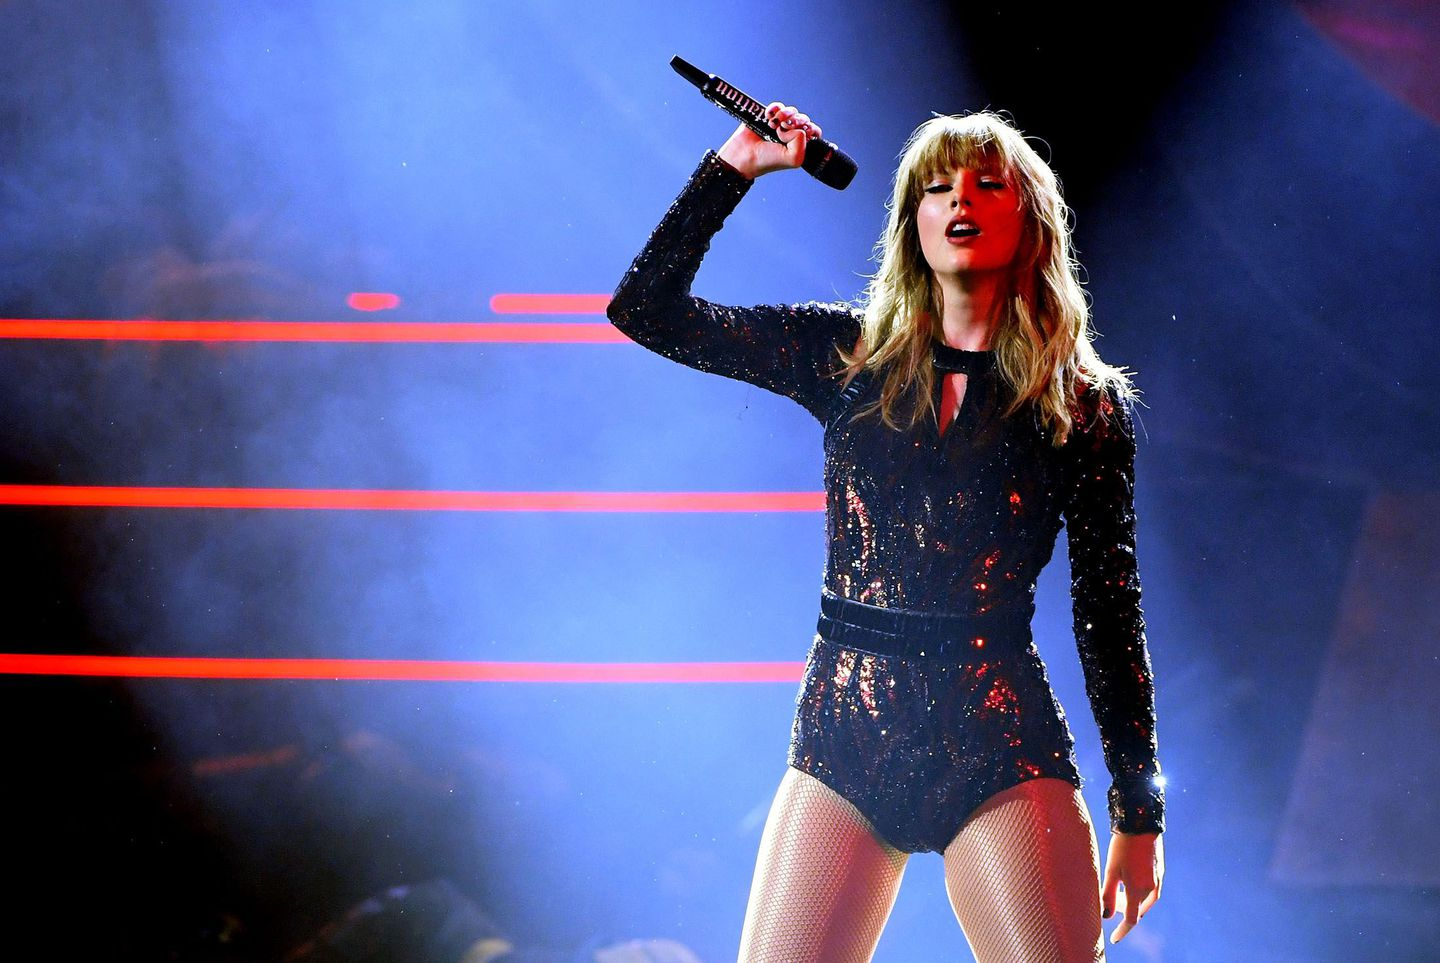 Taylor Swift cancels live appearances, including July concert at Gillette Stadium, for rest of the year - The Boston Globe